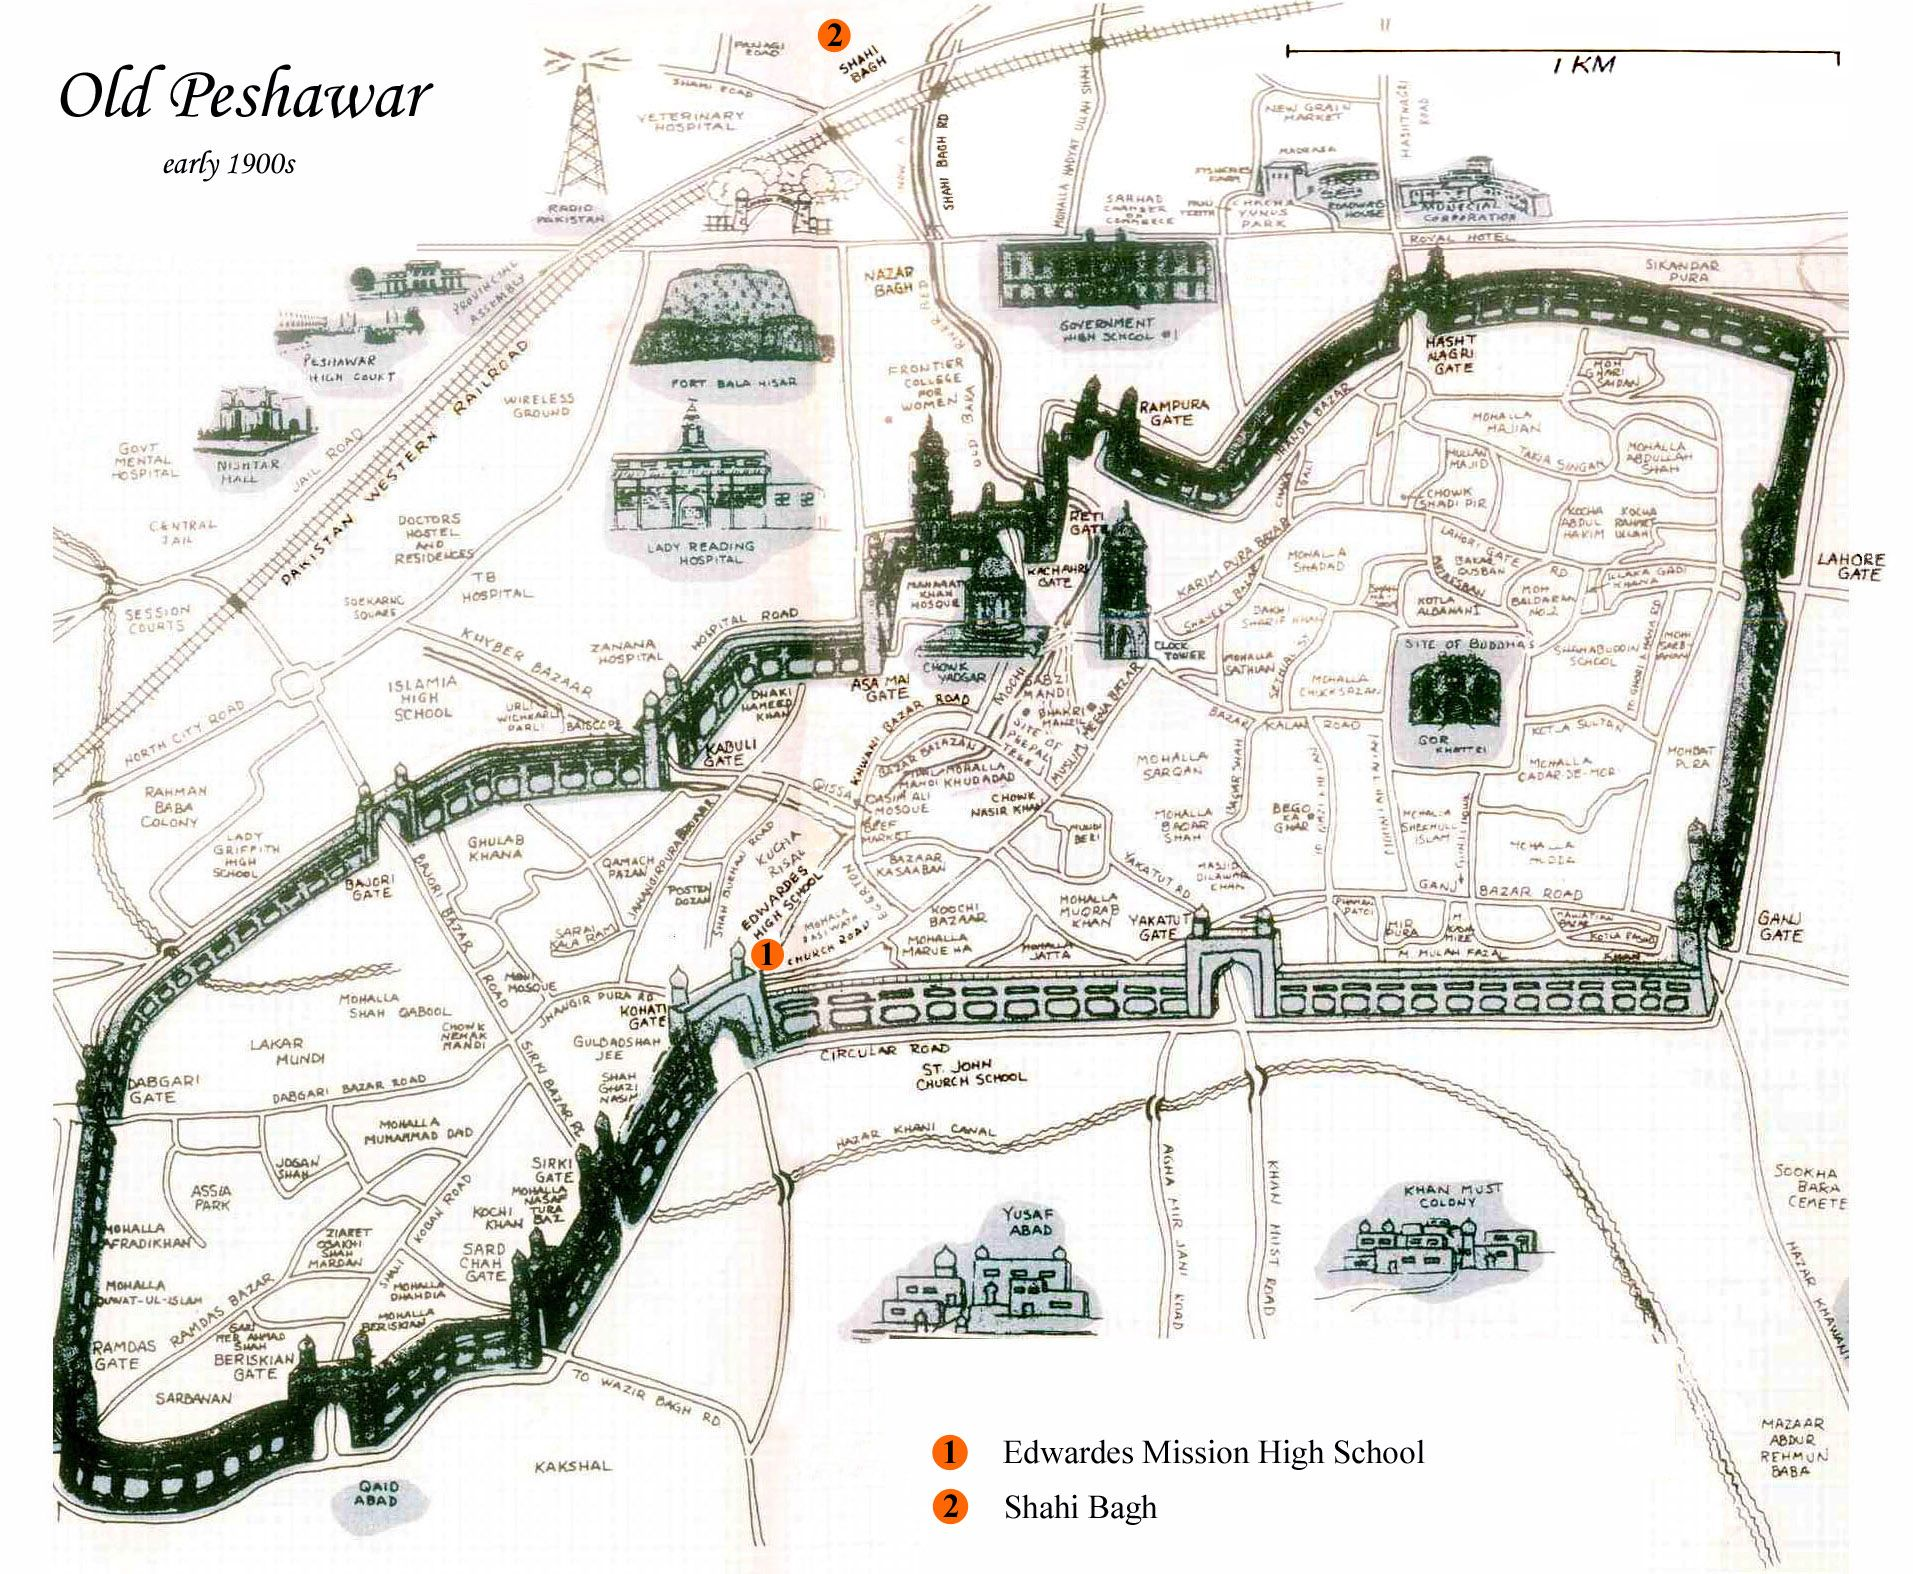 Map of Old Peshawar - Early 1900s